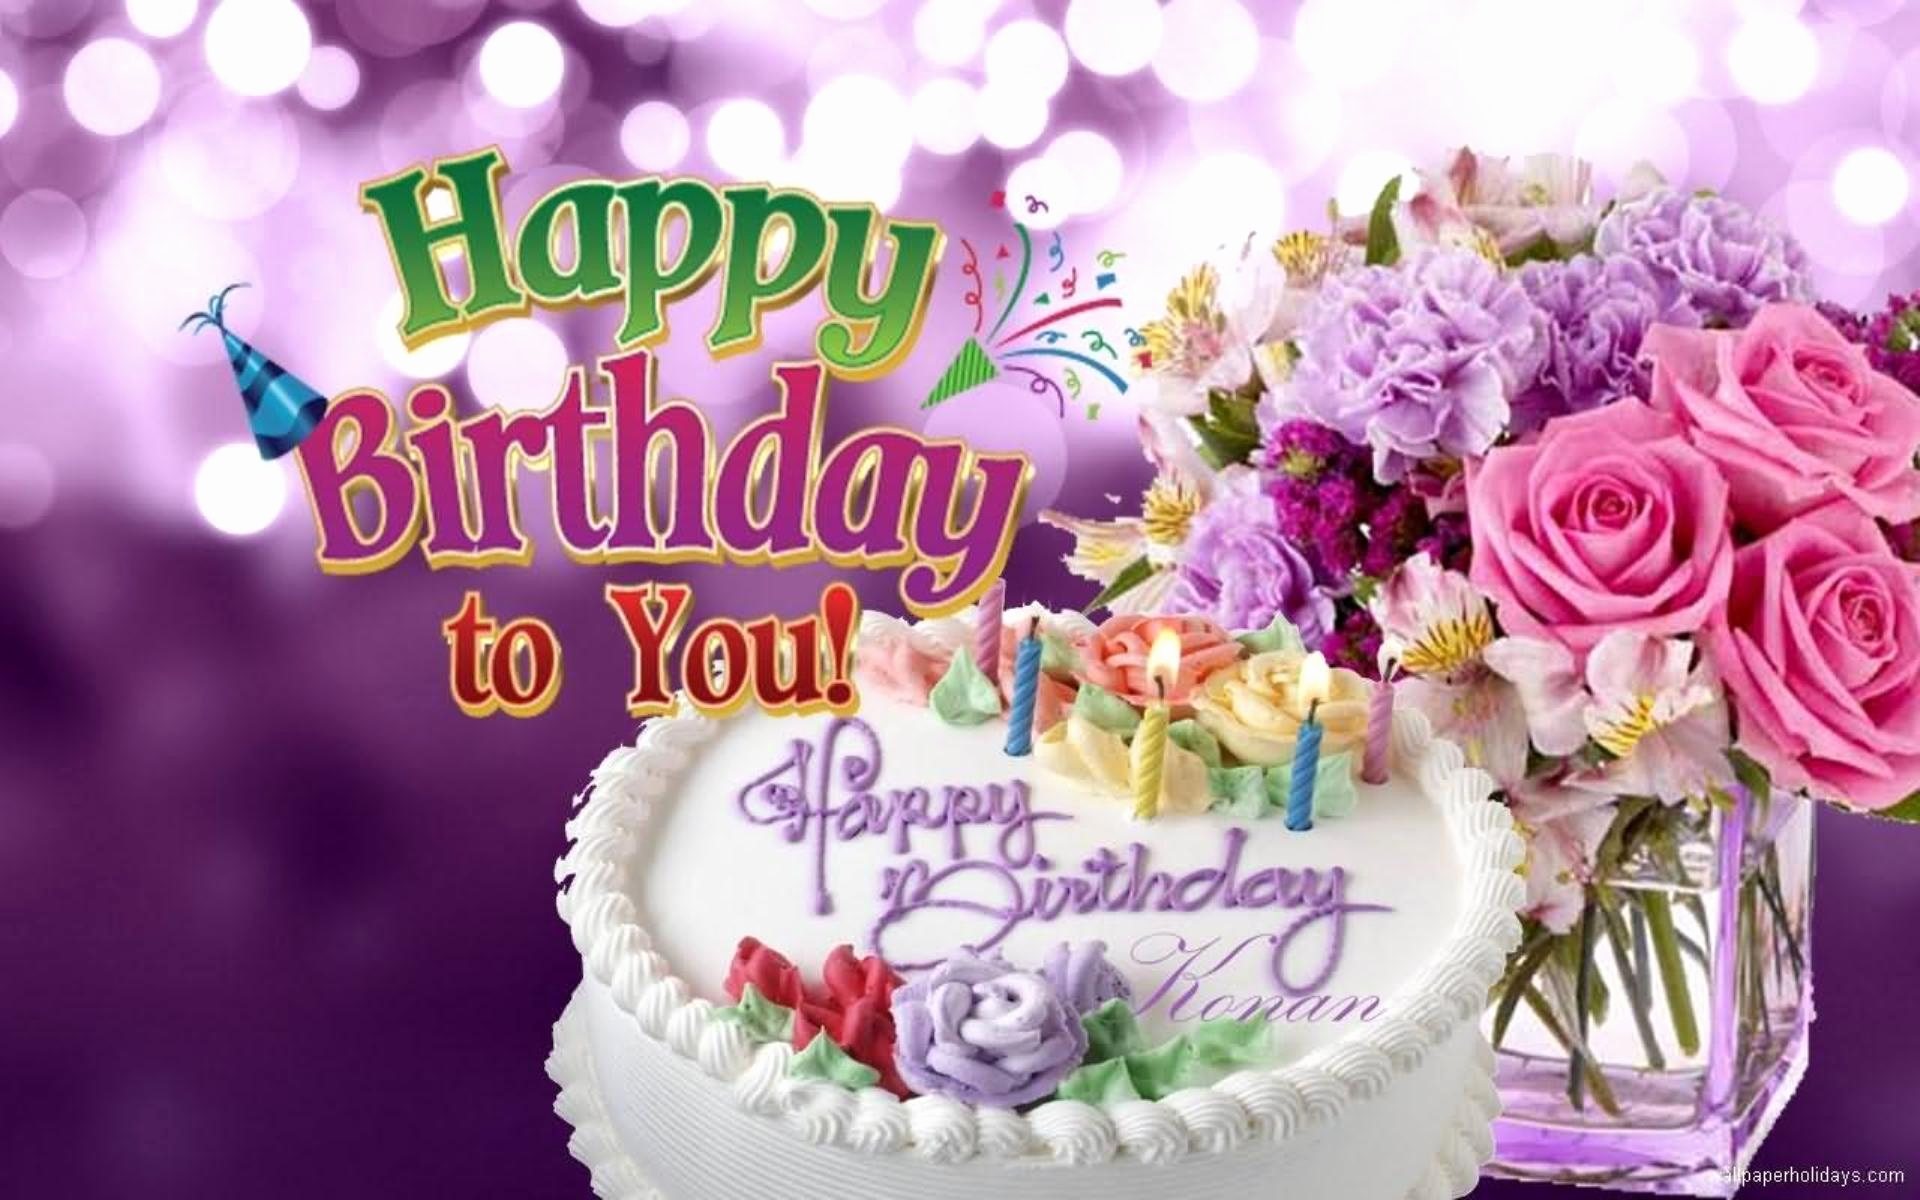 new birthday images free download ; advance-happy-birthday-card-new-happy-birthday-wallpaper-free-download-of-advance-happy-birthday-card